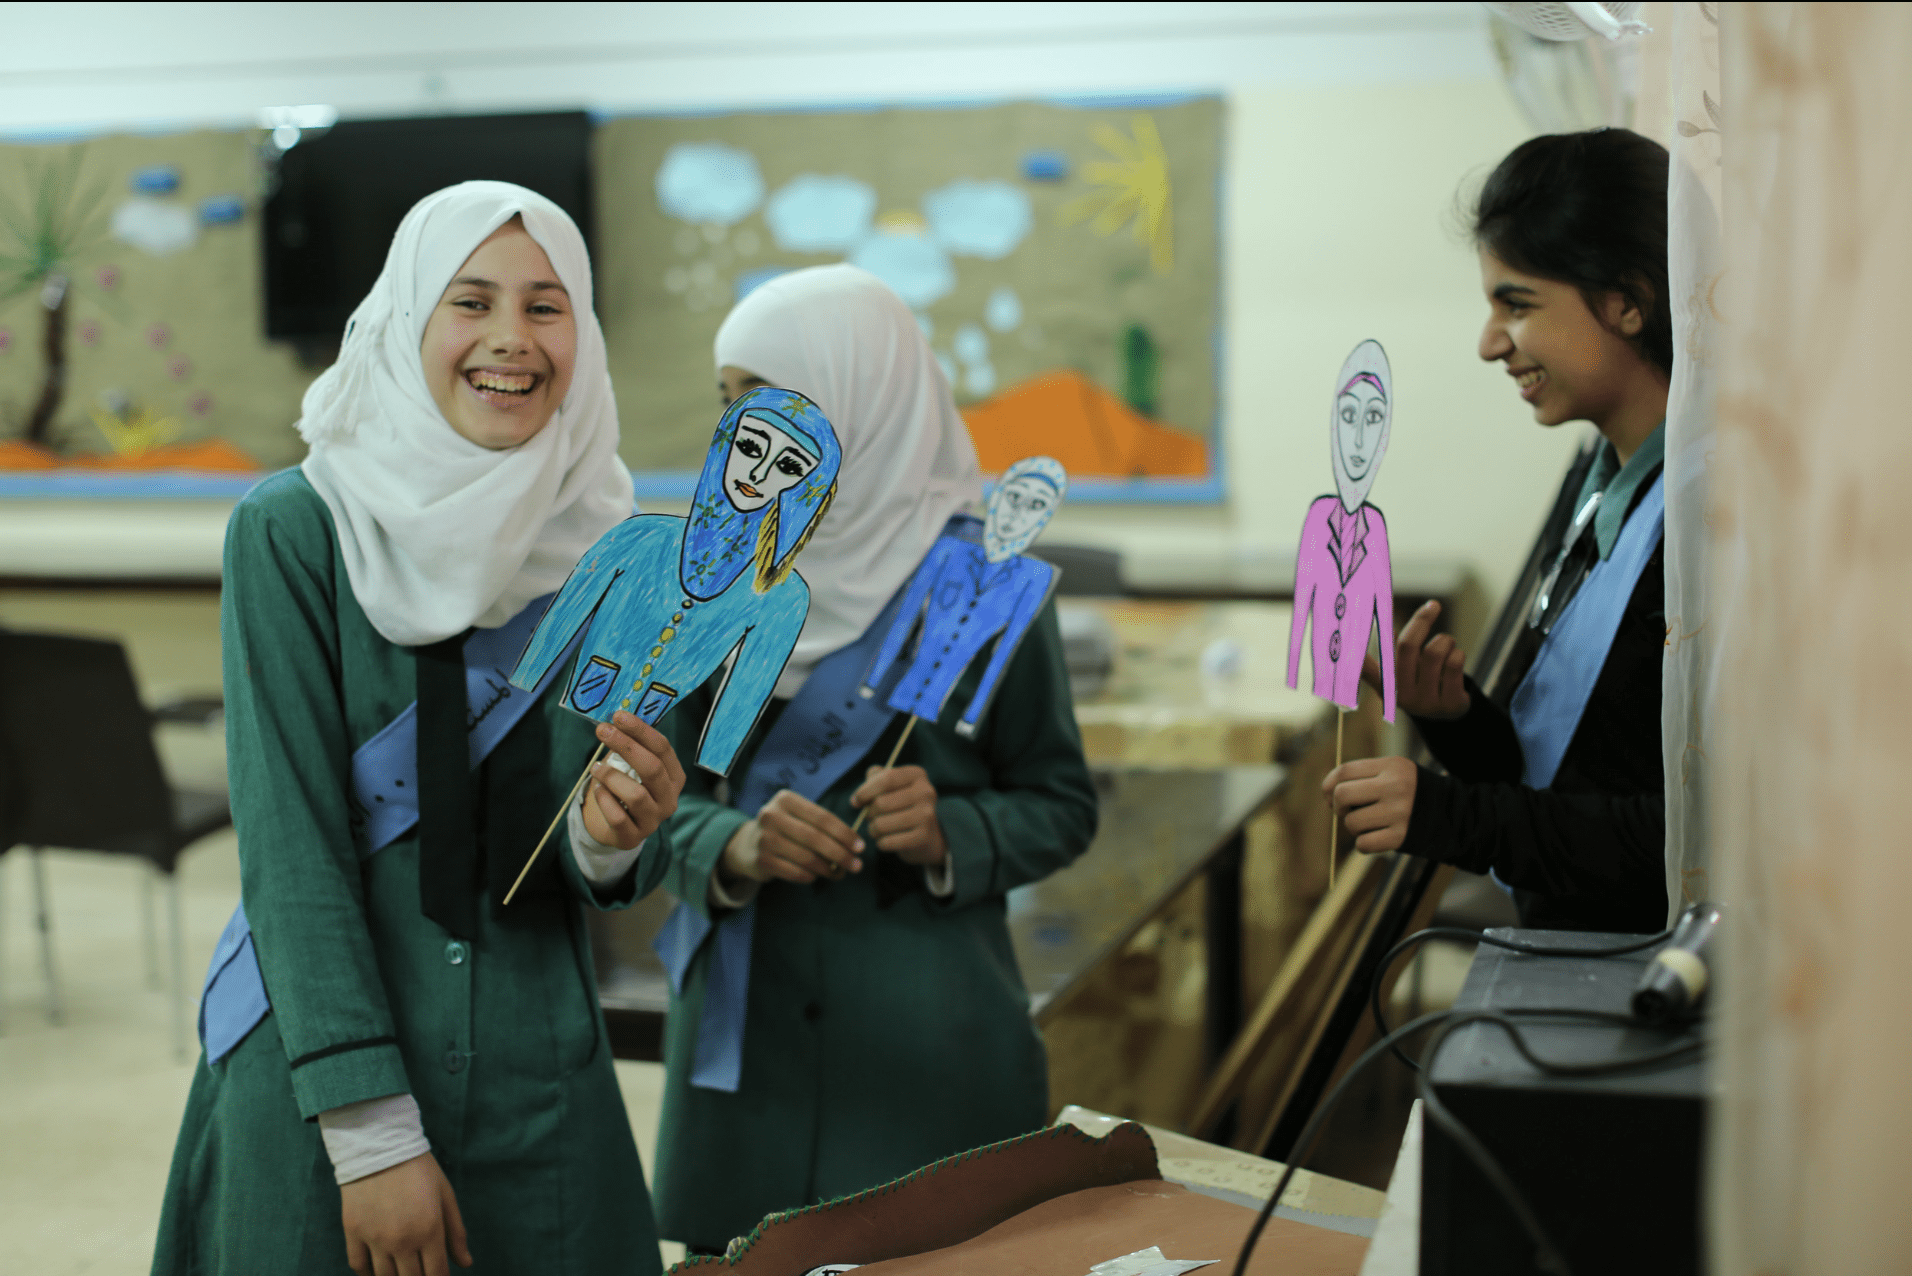 Making global citizenship education possible for refugees